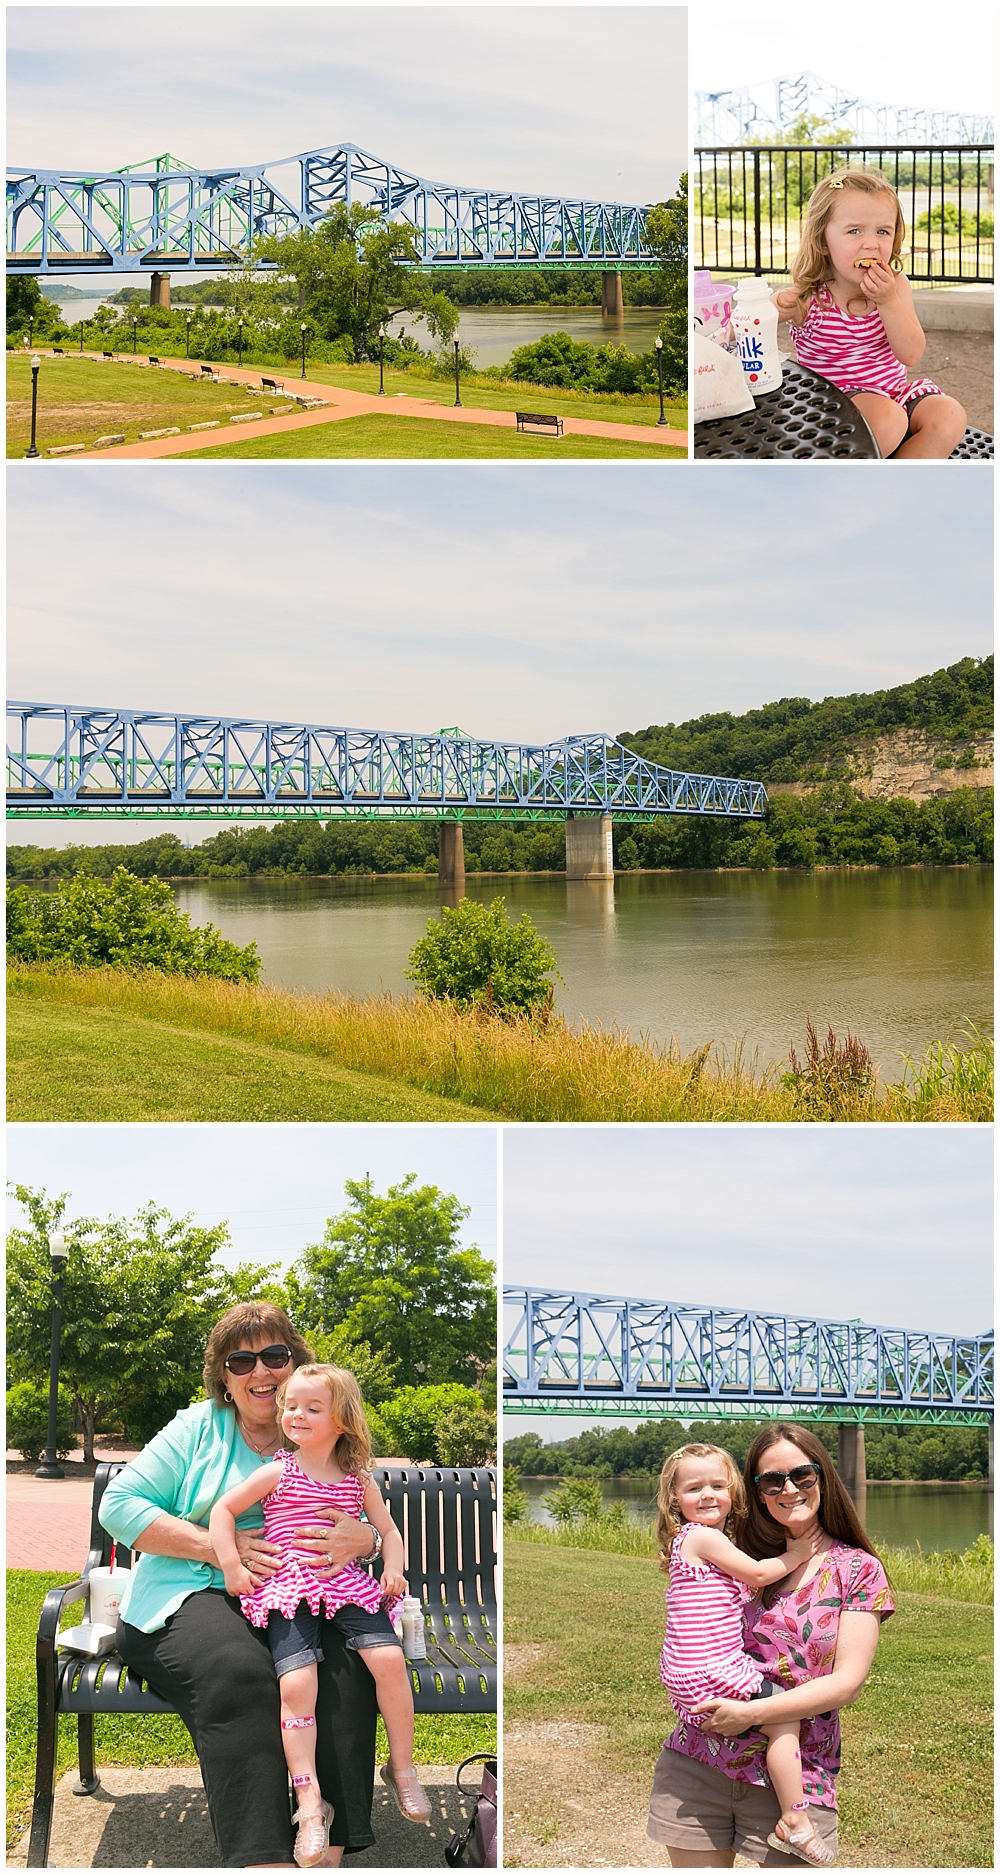 little girl with mom and grandmother at riverfront park in Ashland, Kentucky